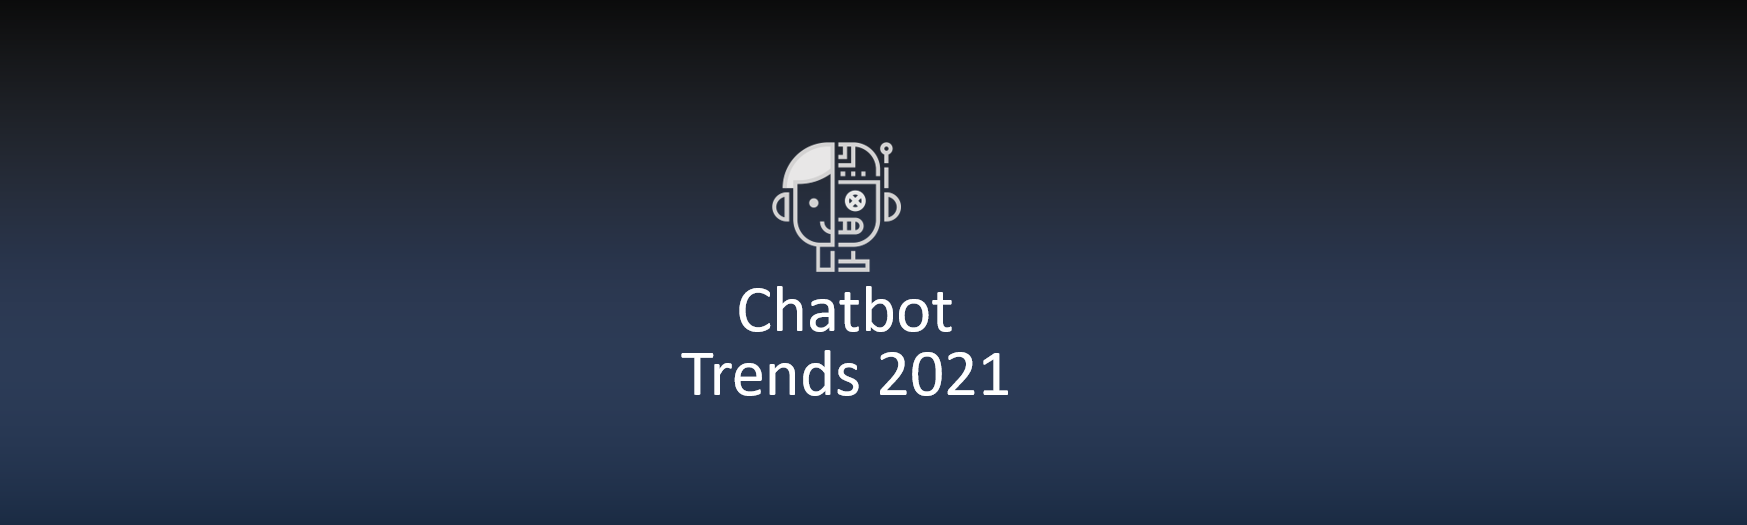 Chatbot Trends 2021